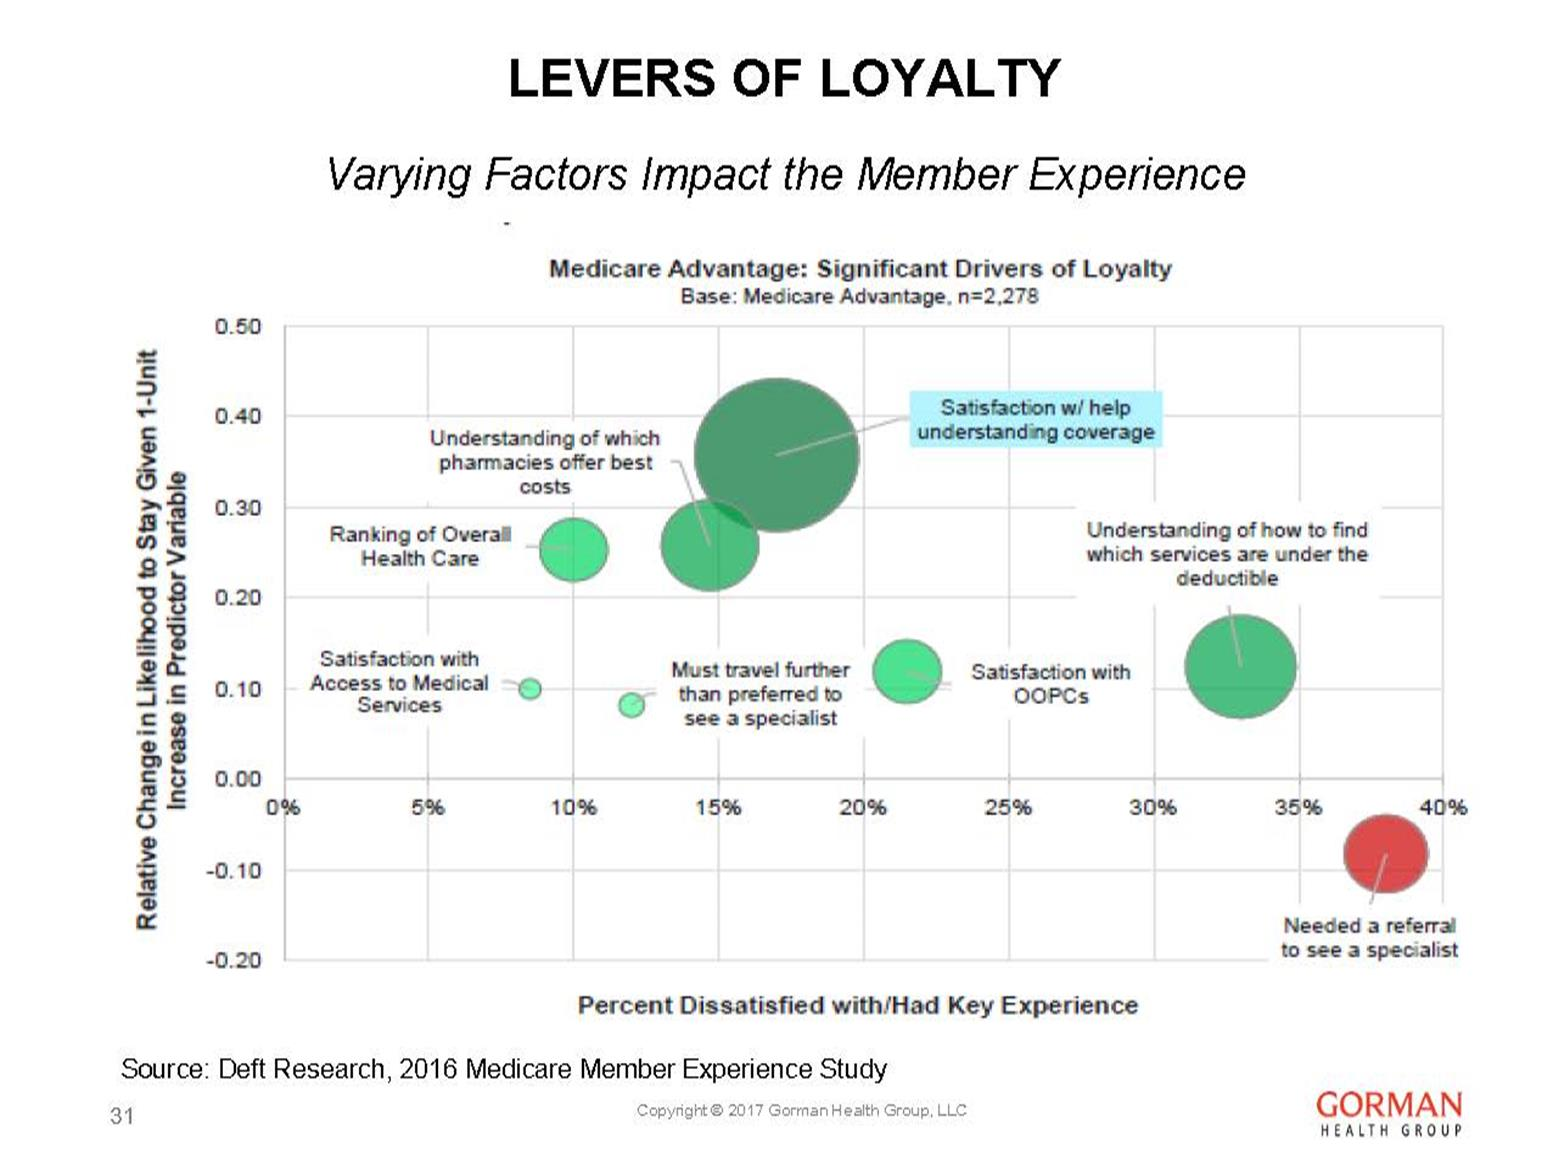 John Gorman slide on factors that impact the member experience